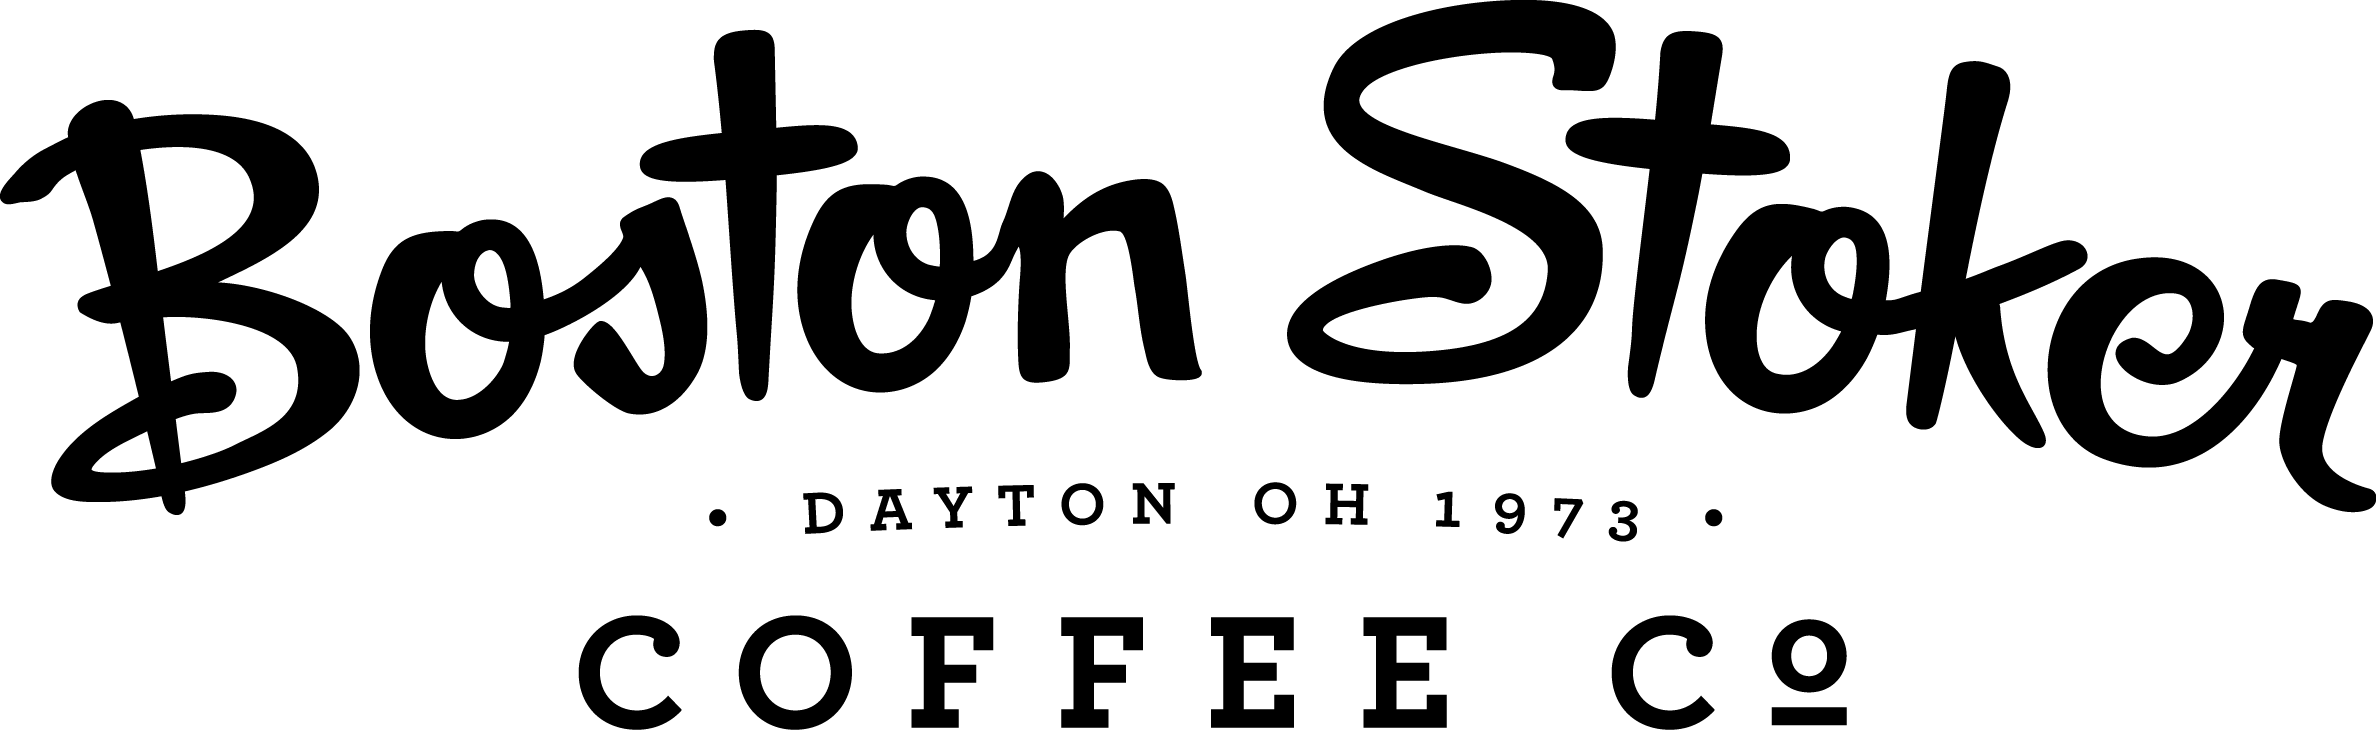 Boston Stoker Coffee Co - Dayton Ohio 1973